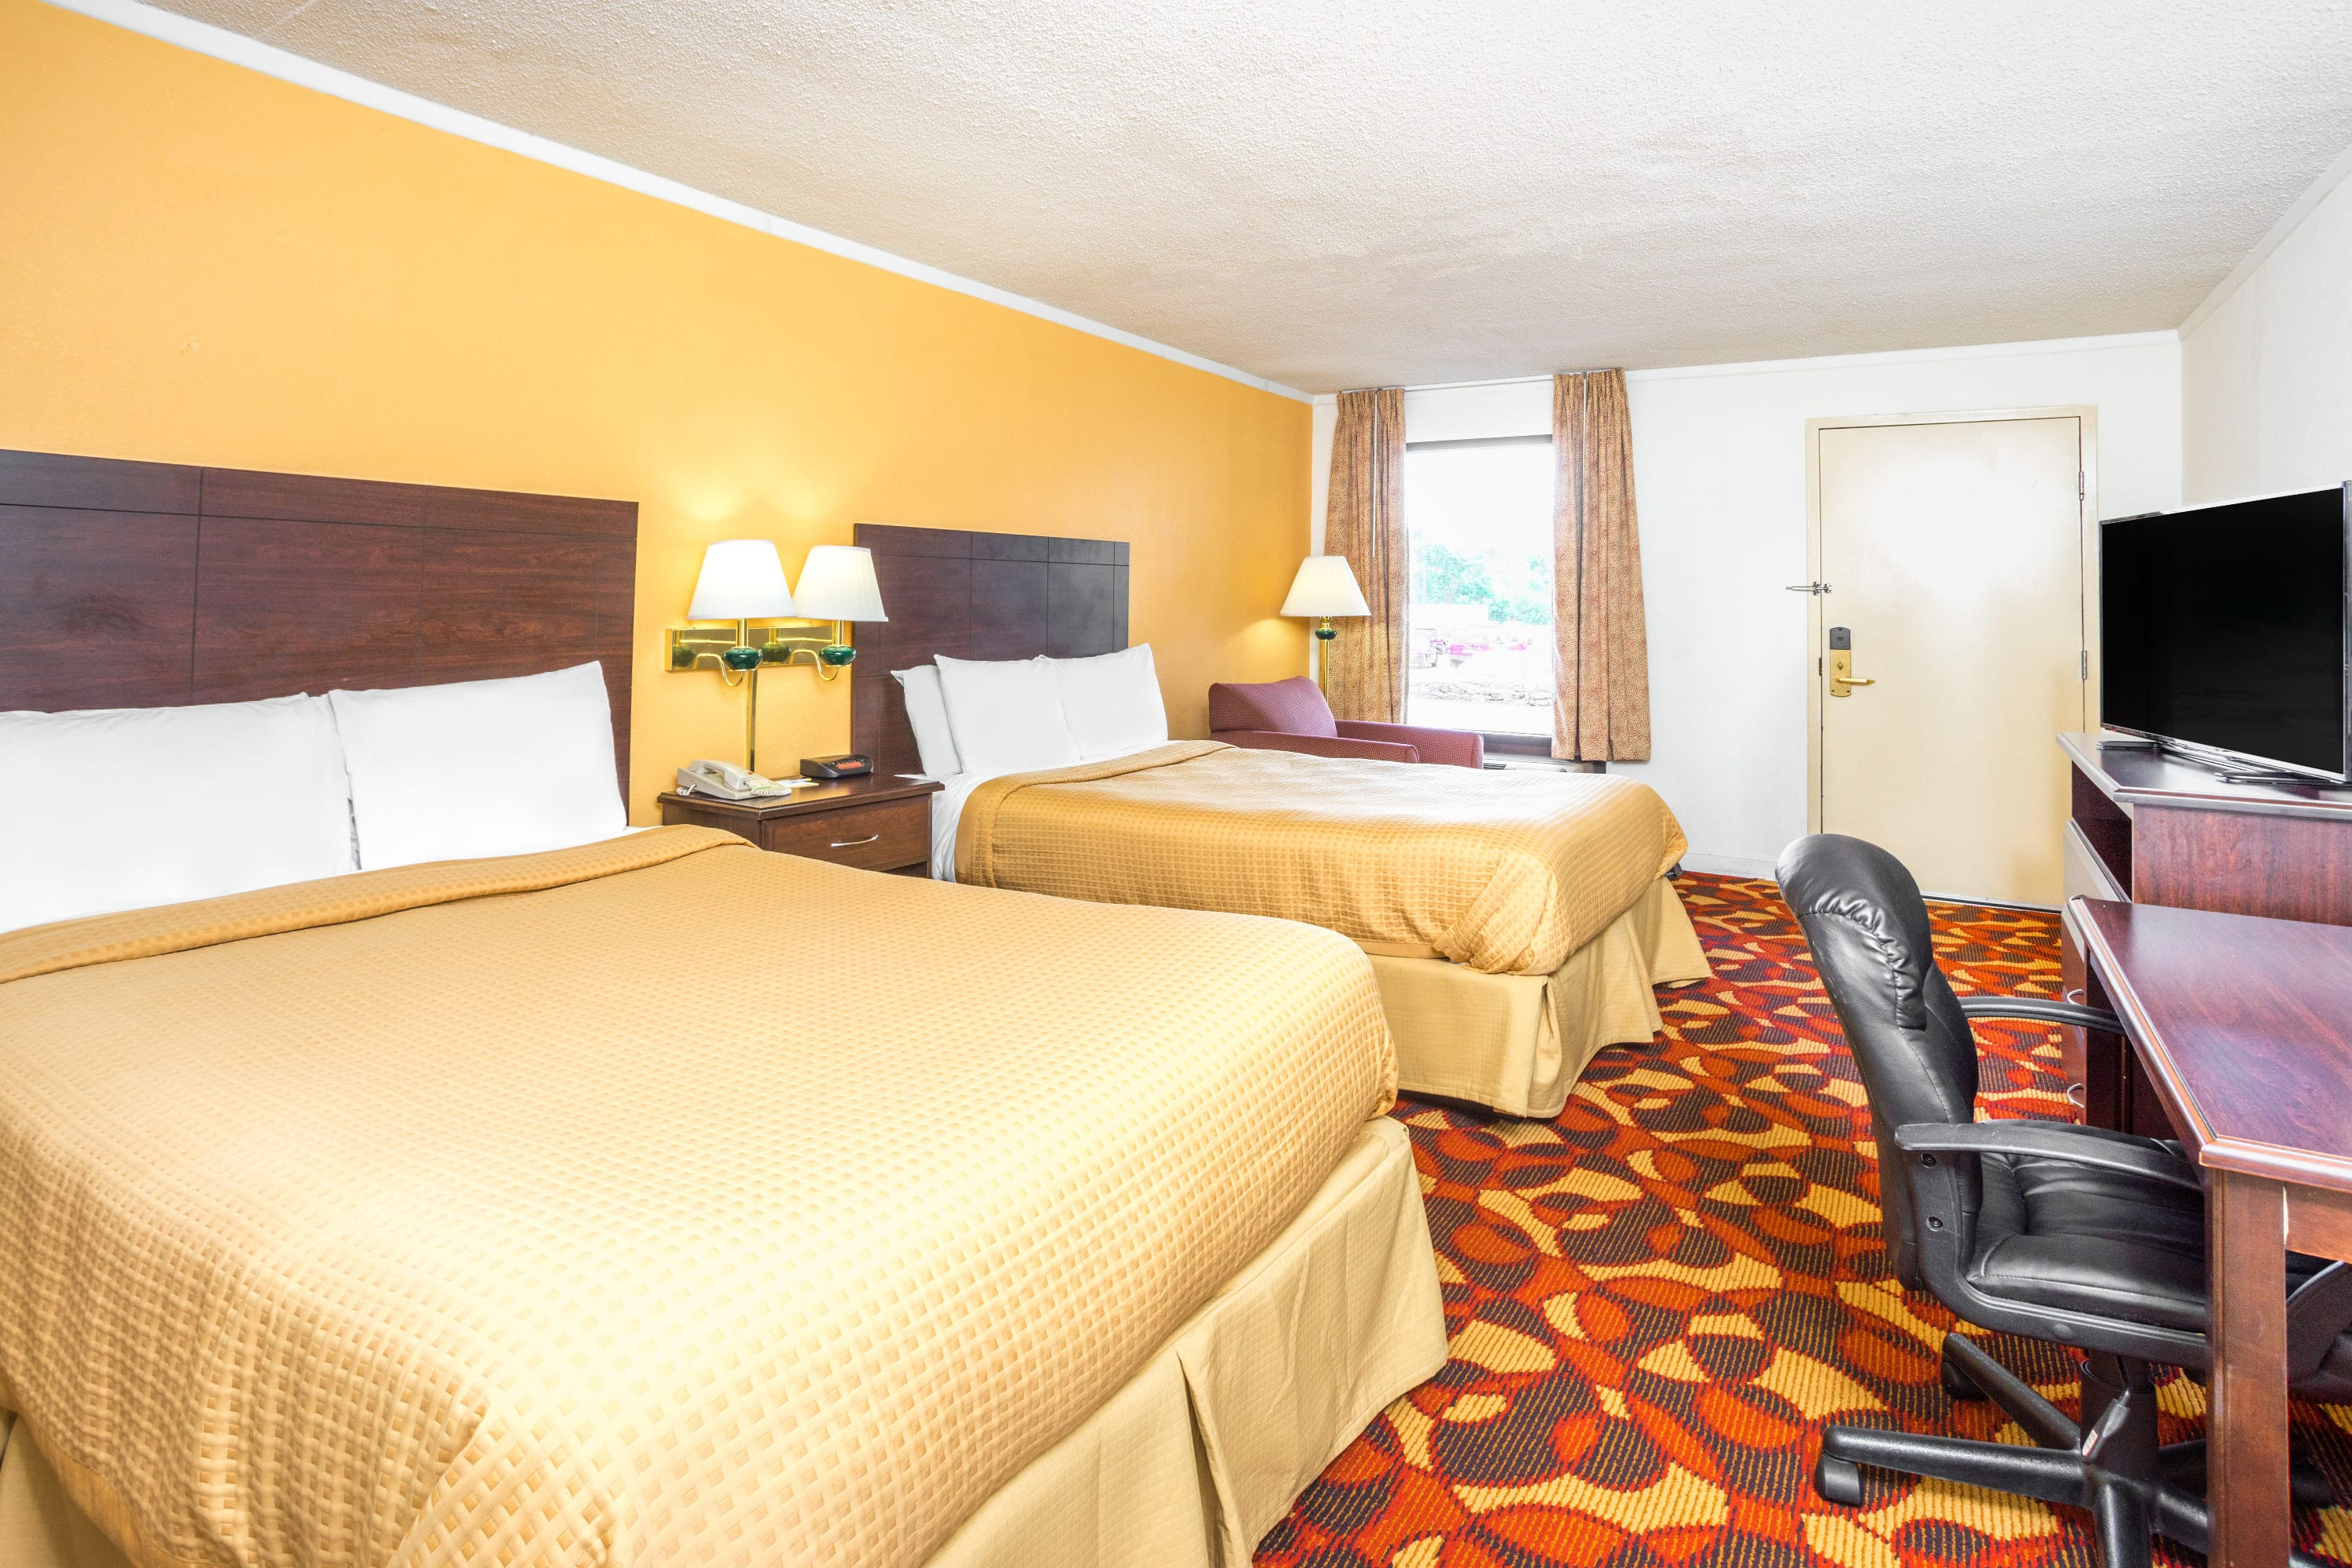 Guest room at the Days Inn Salem in Salem, Virginia